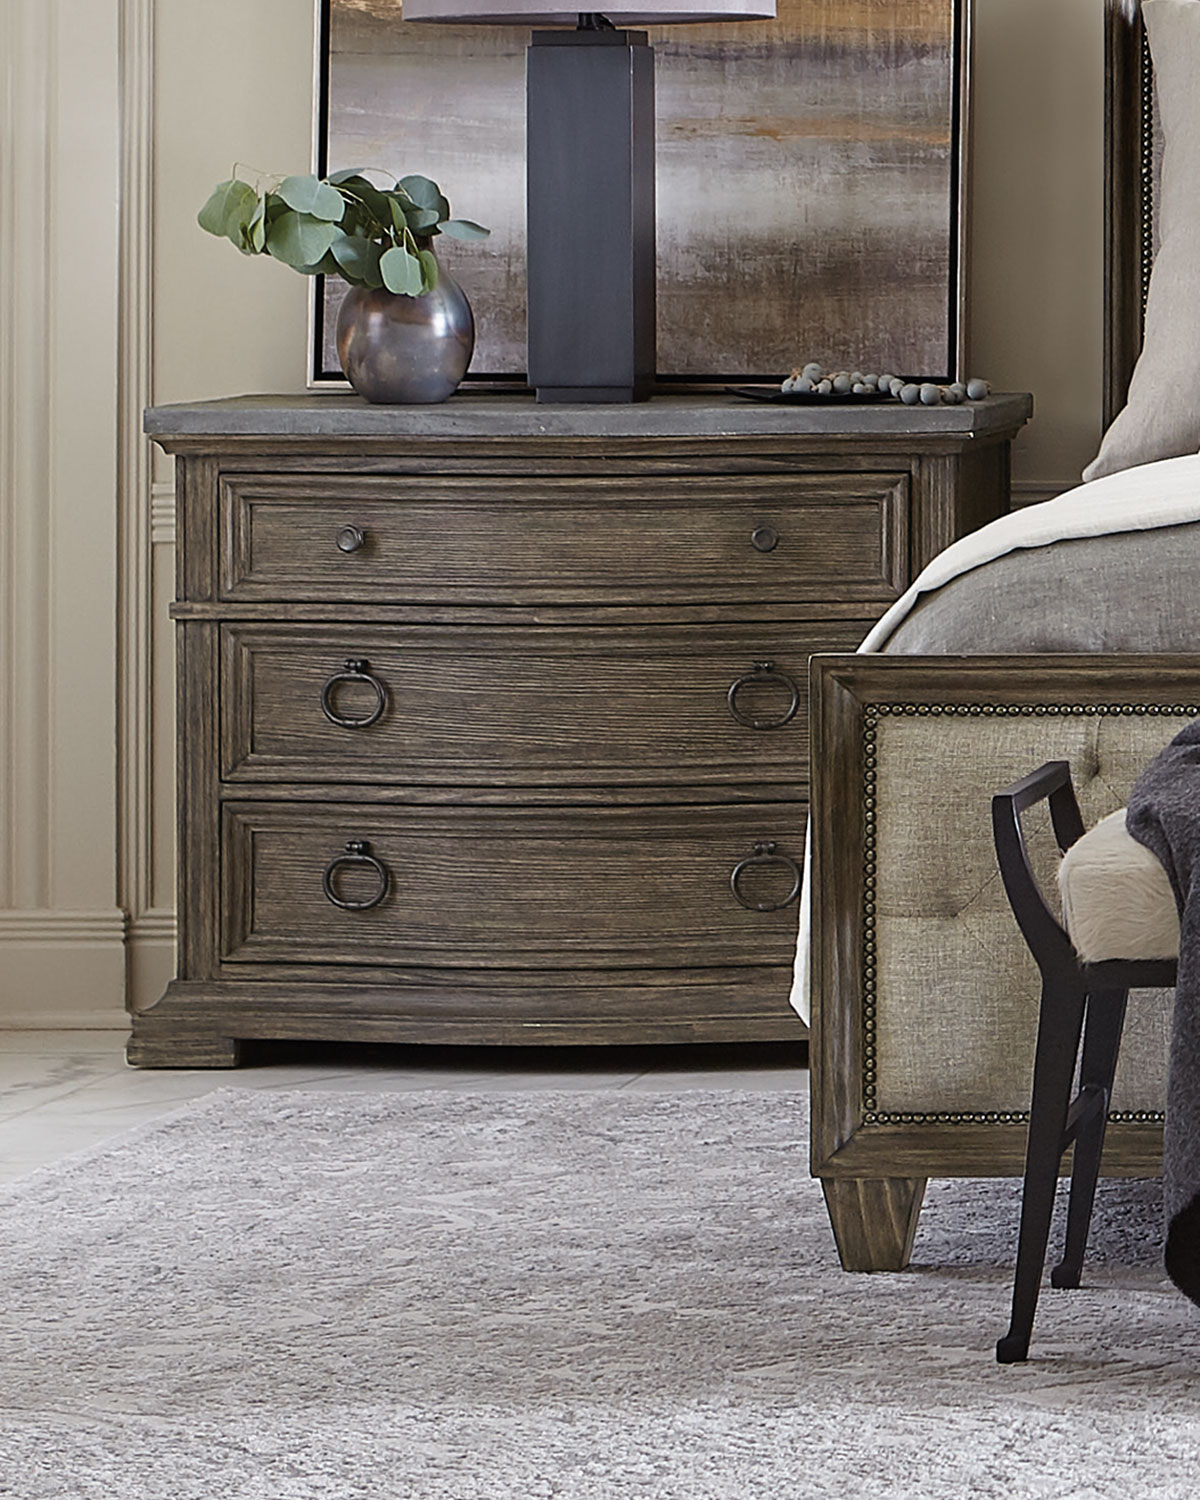 Bernhardt Canyon Ridge Bachelors Chest